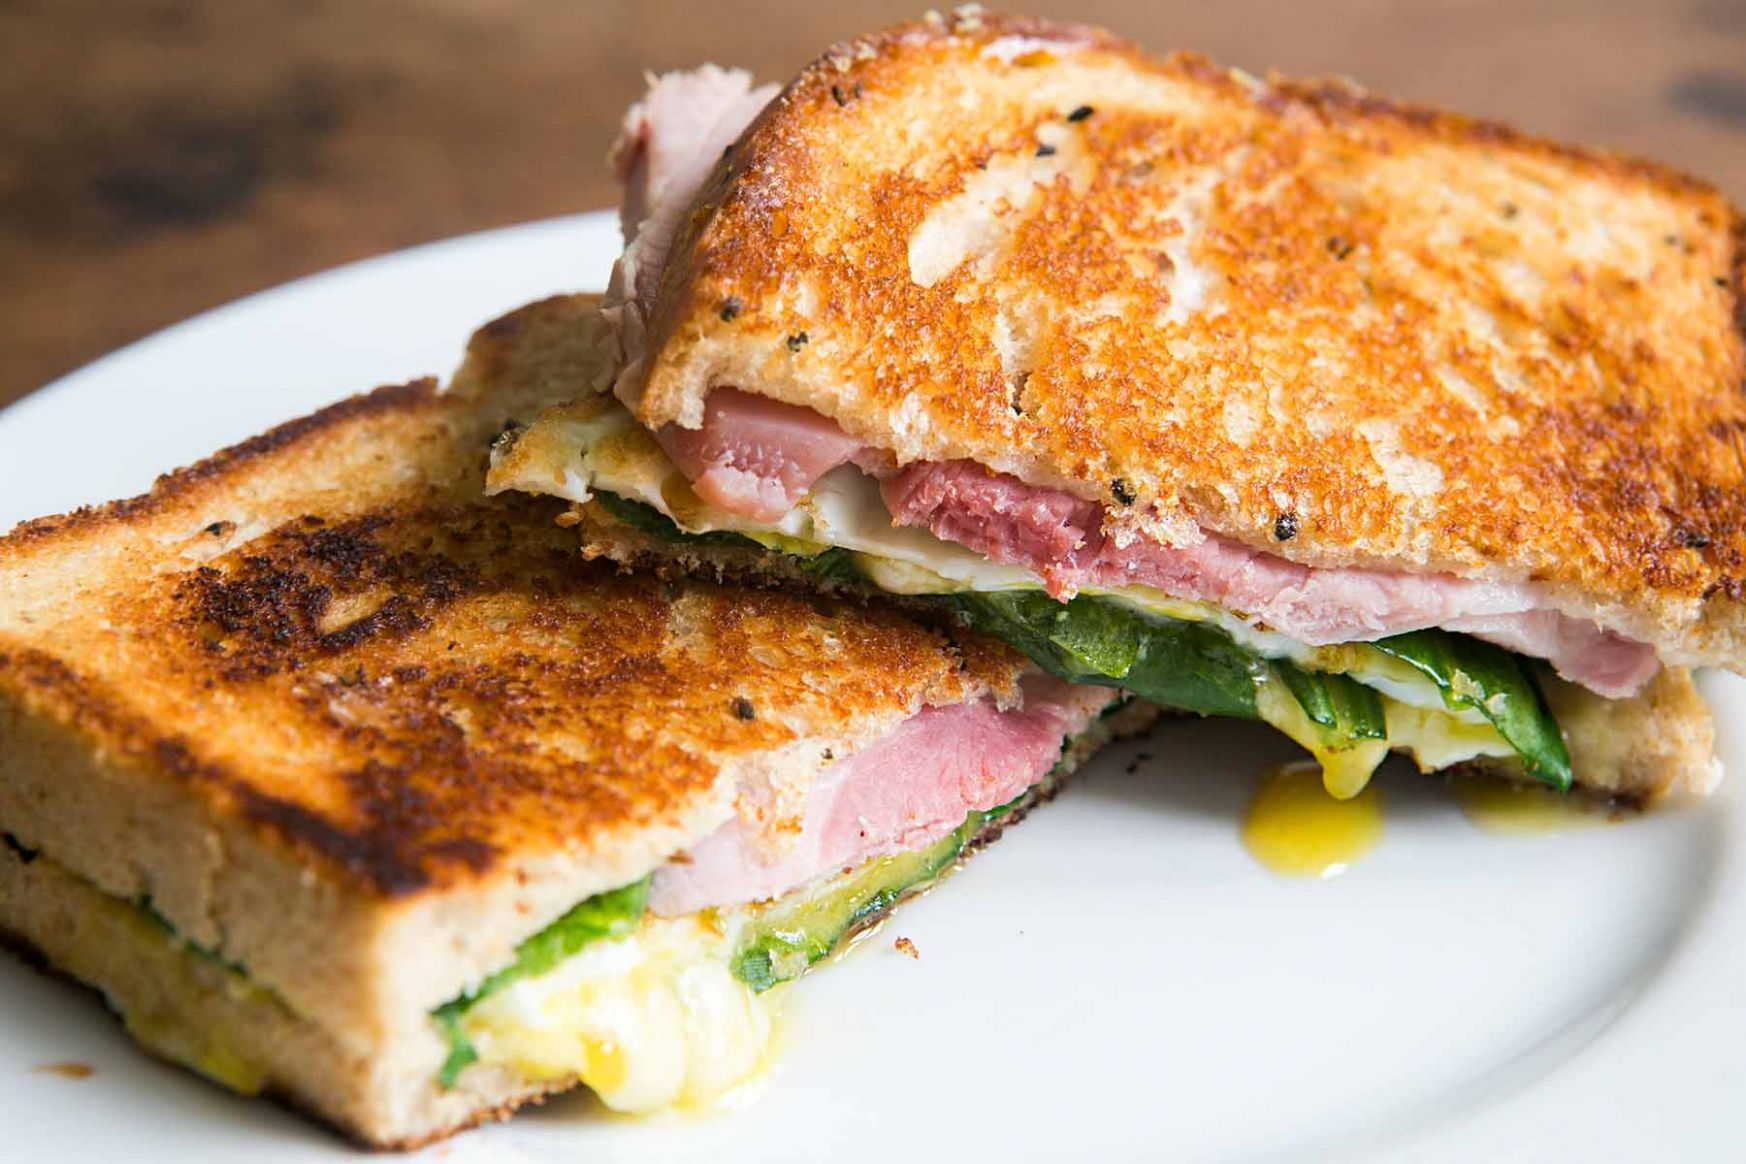 Greens, Eggs, and Ham, Grilled Cheese Sandwich - Sandwich Recipes To Go